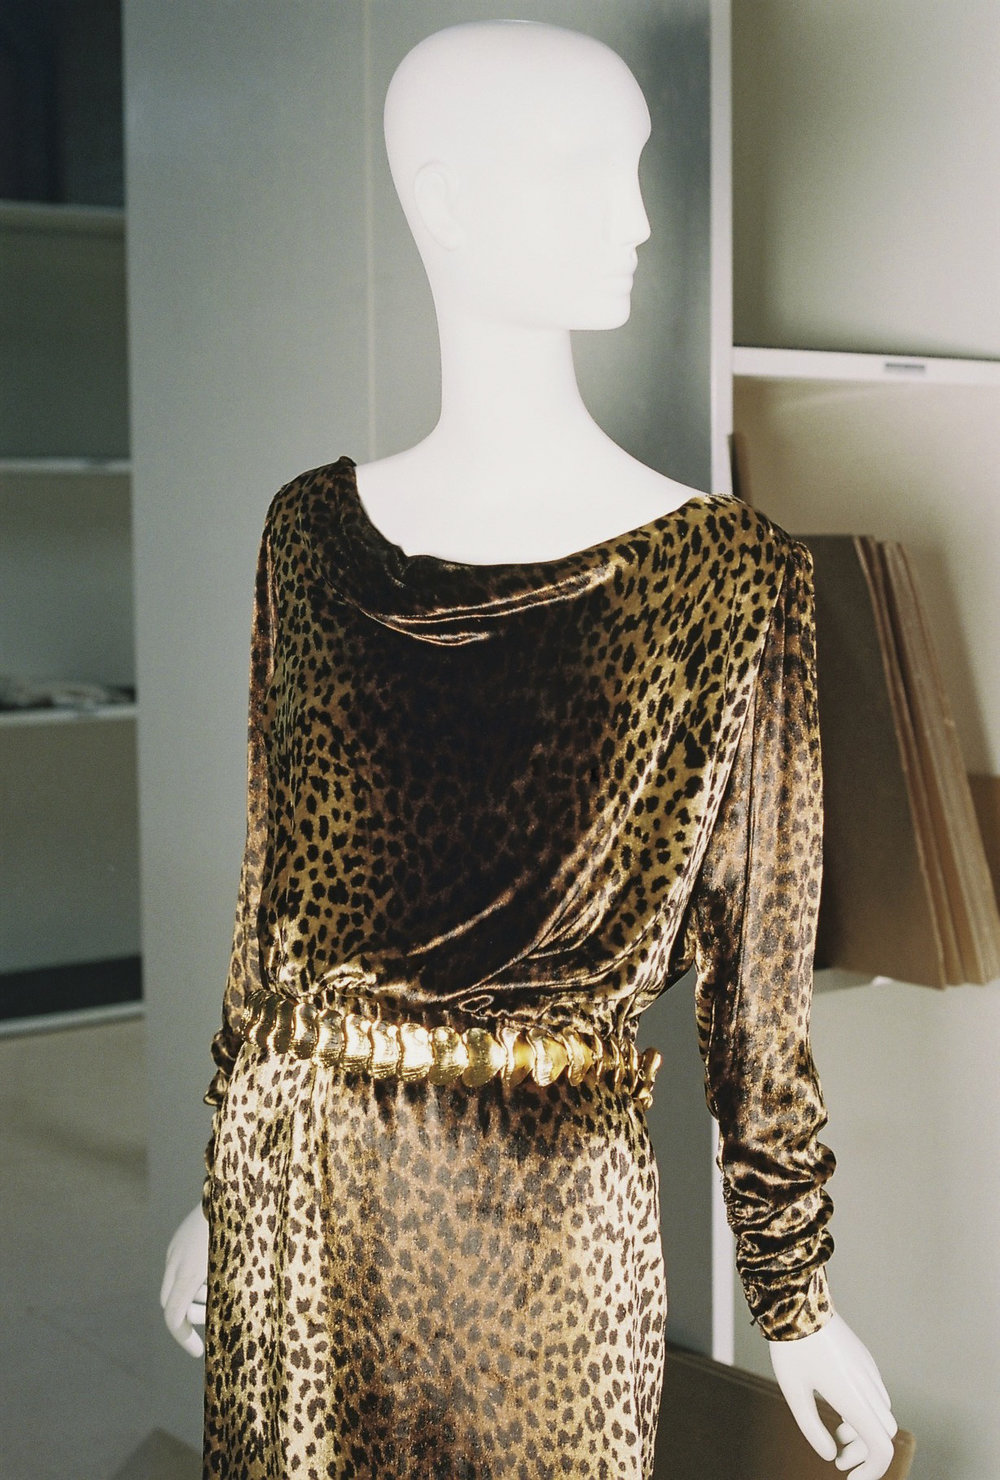 32_LEHR_YSL_CHRISTIES_3763-33a.JPG